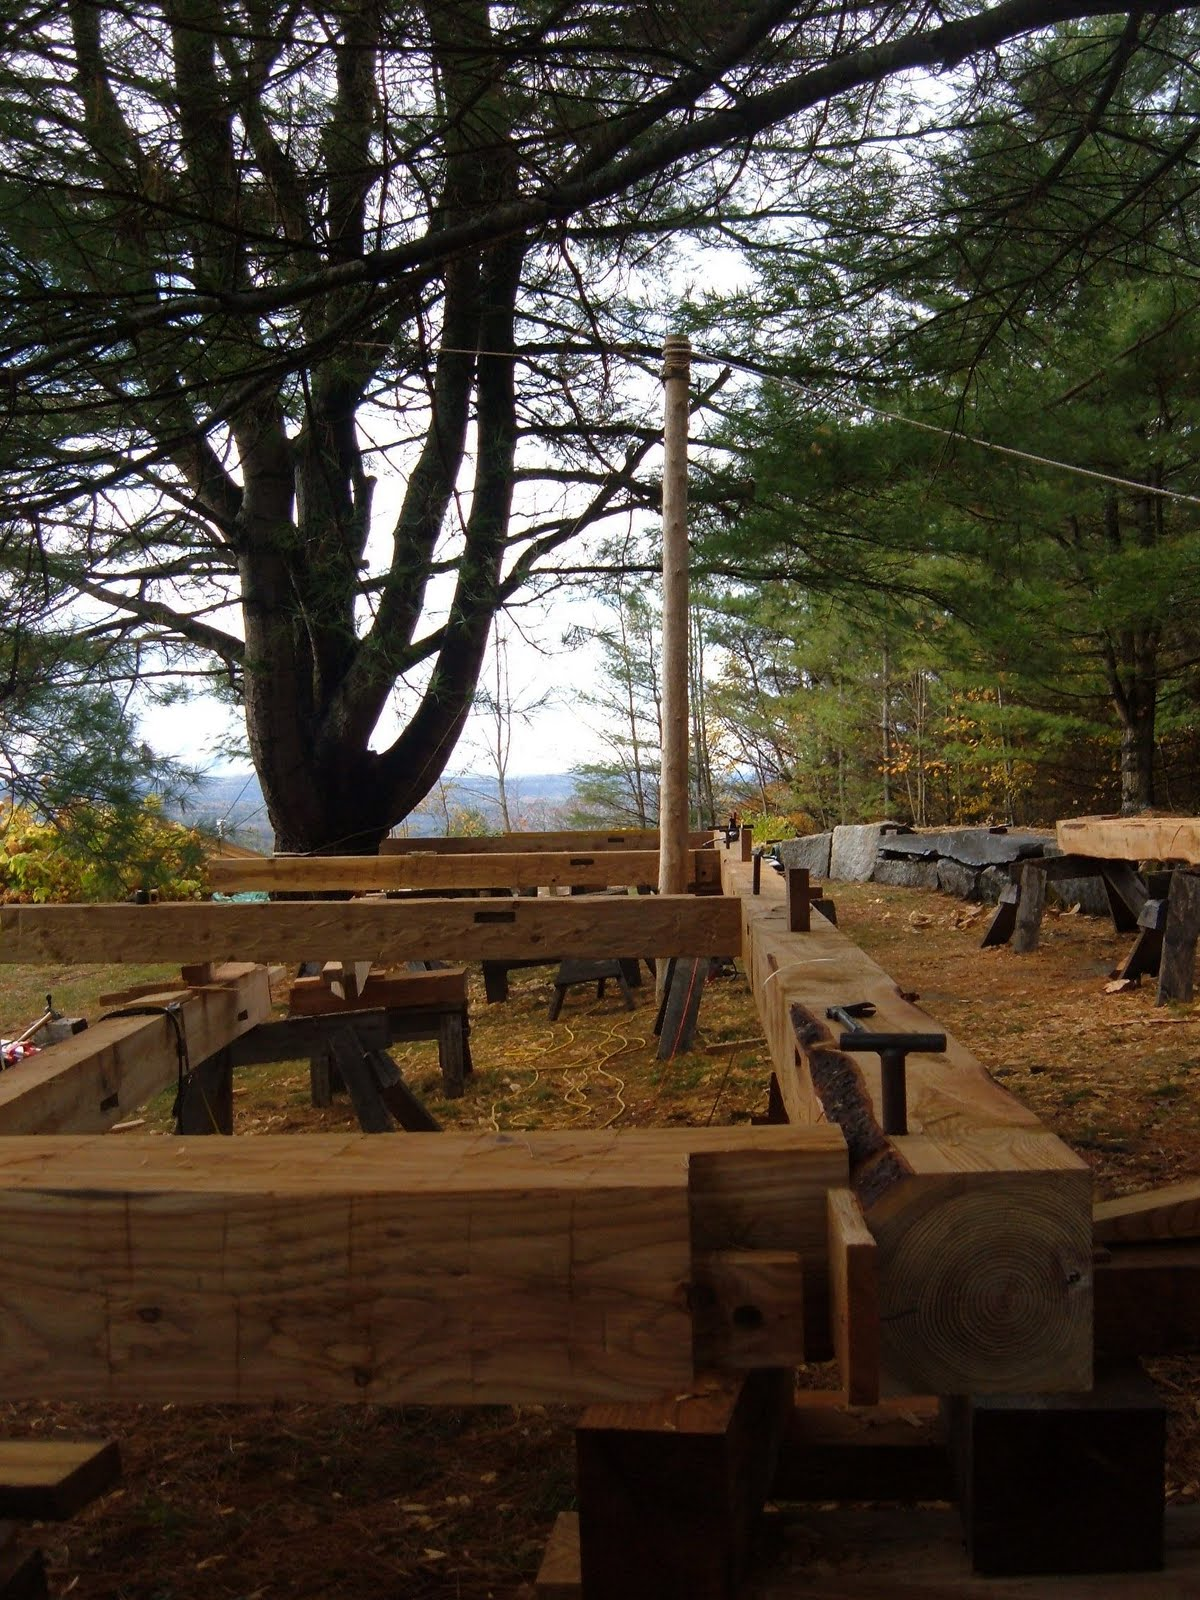 In order to scribe the braces, the posts and plate must be leveled and squared.